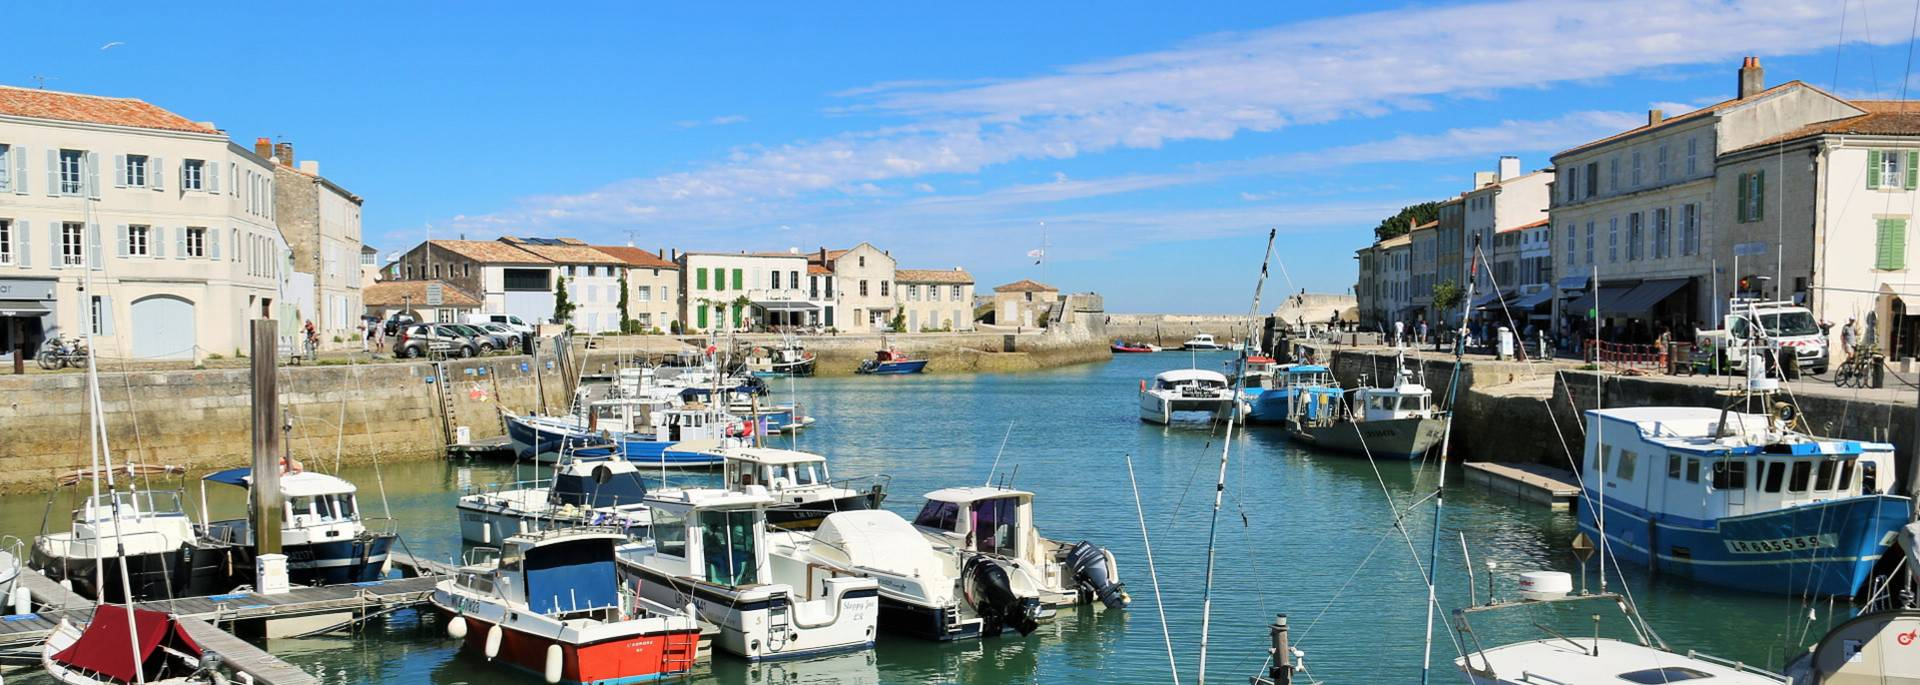 Port de Saint Martin de Ré by Lesley Williamson